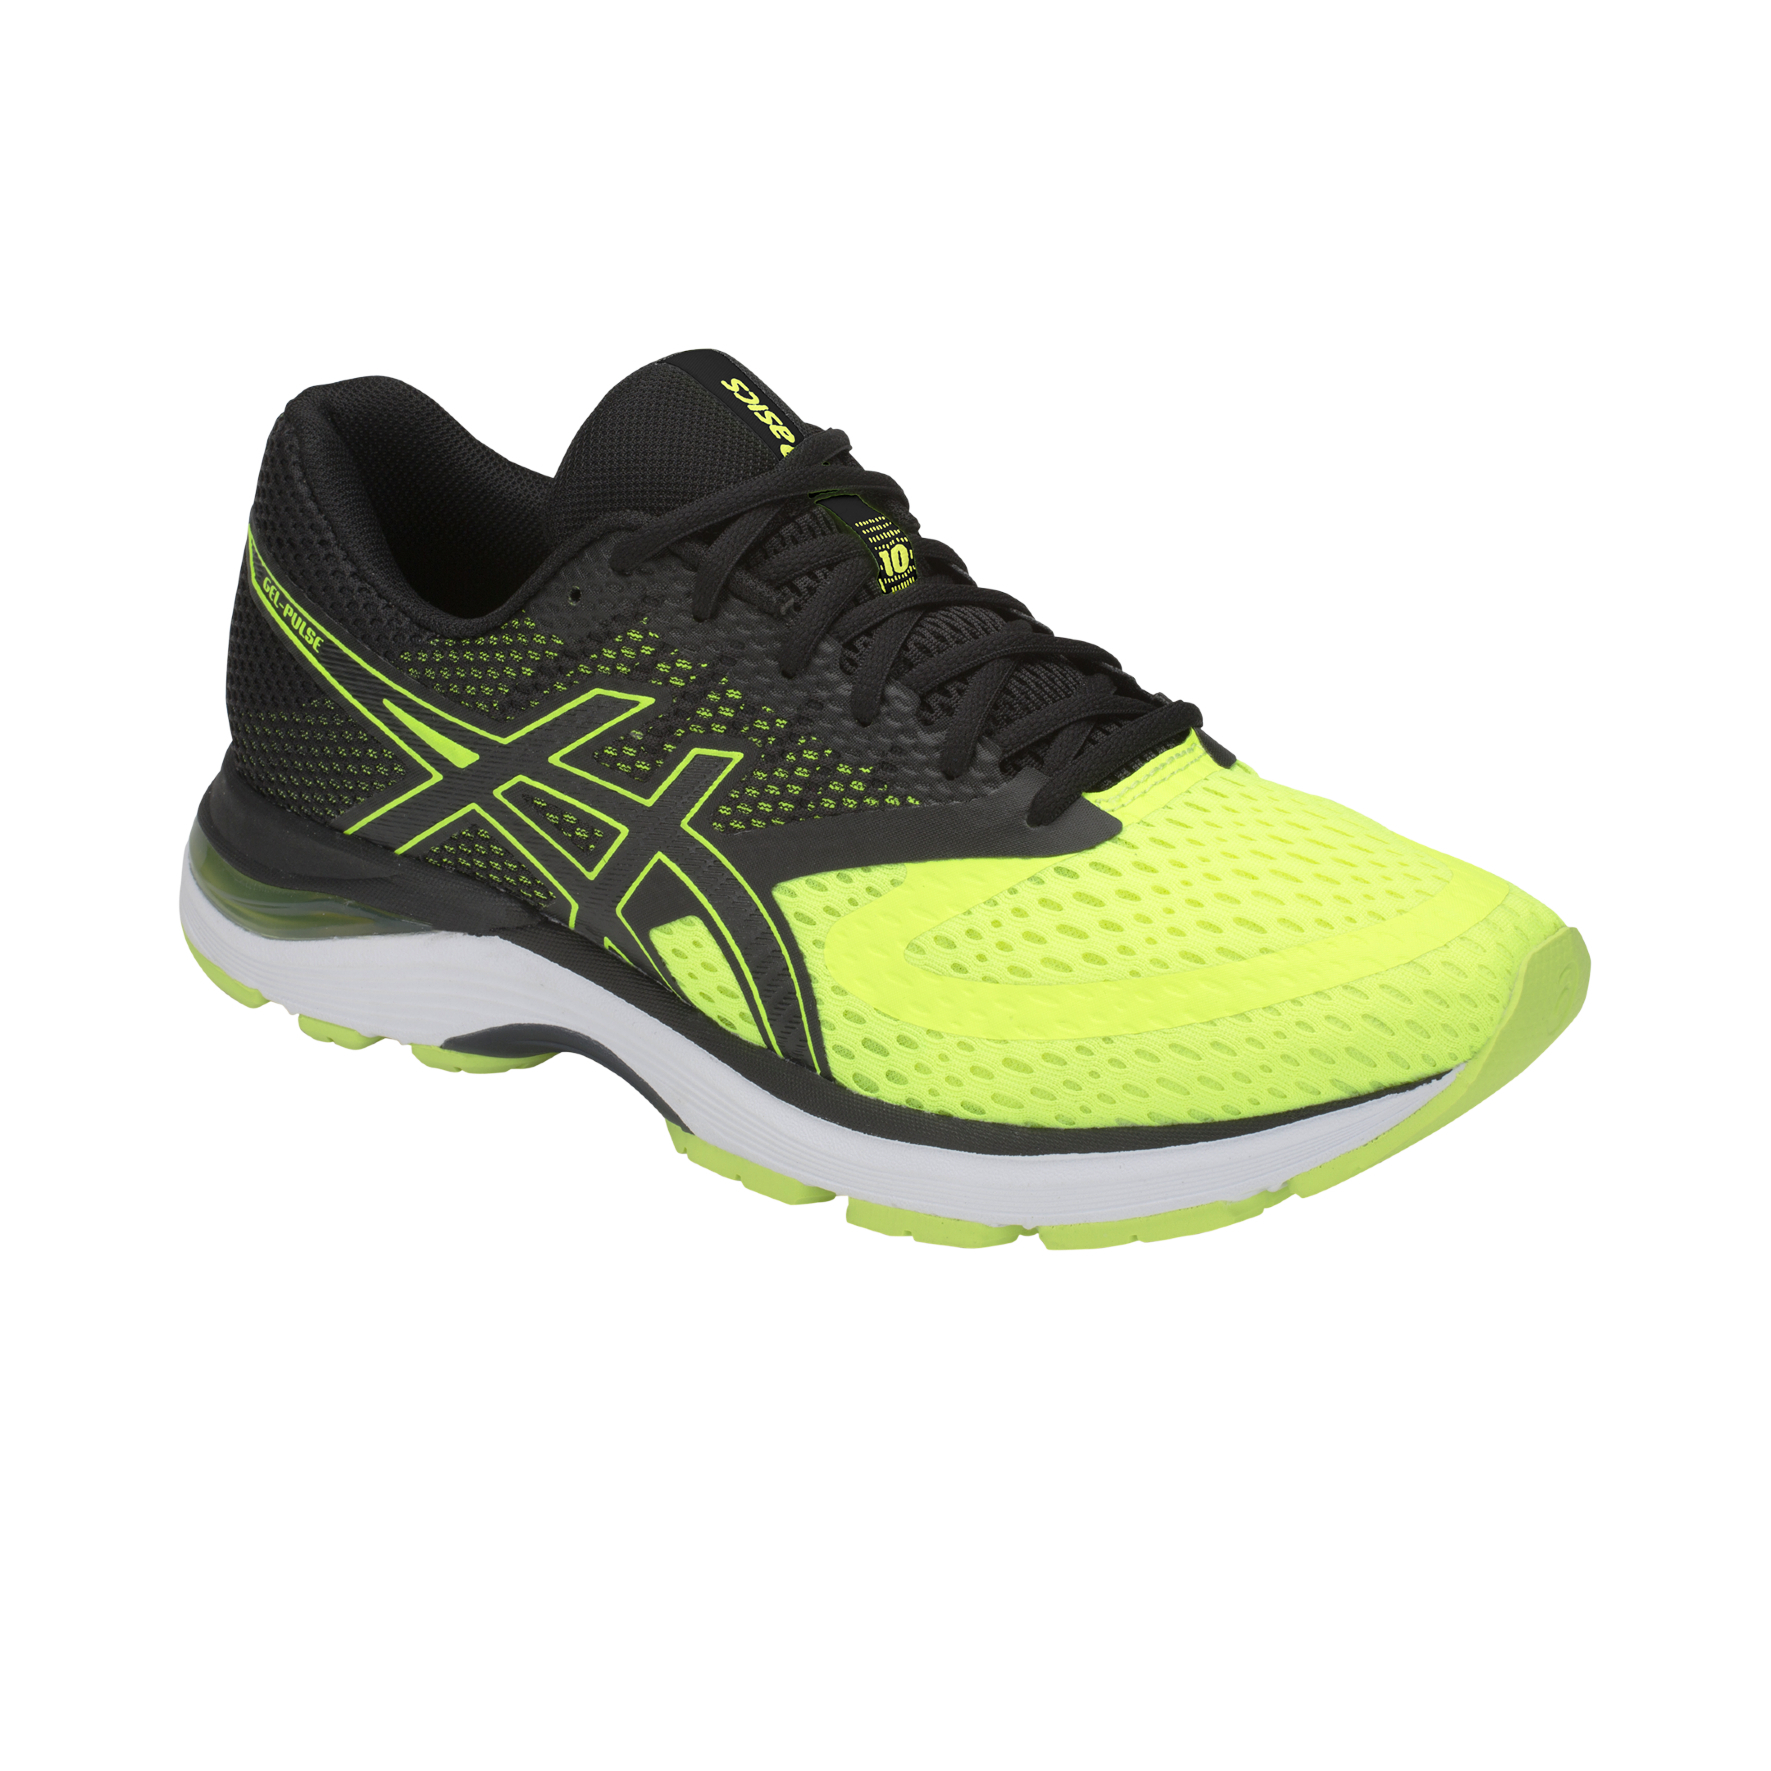 Asics Gel 10 Chaussures Chaussures Pulse Pulse Asics Chaussures 10 Asics Gel hsrCtdxQ